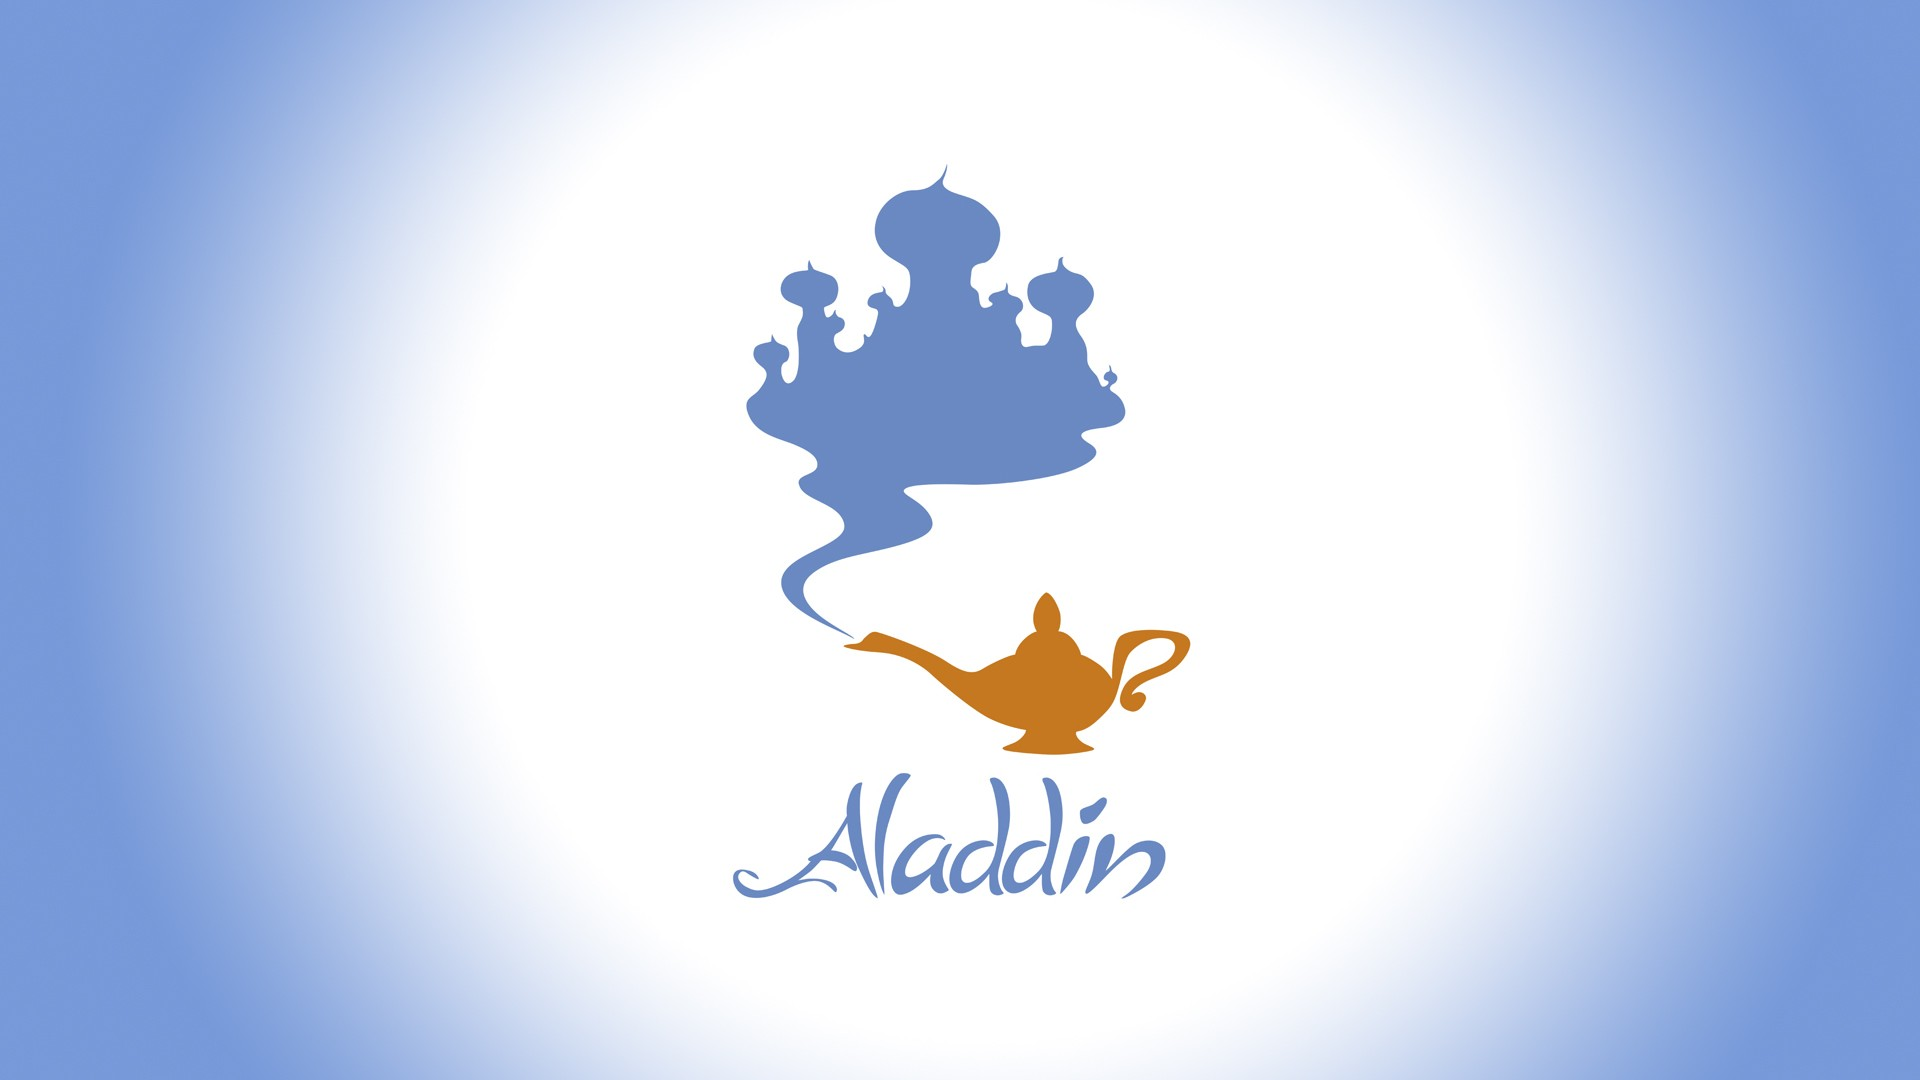 Aladdin Wallpaper Iphone Aladdin Full Hd Wallpaper And Background Image 1920x1080